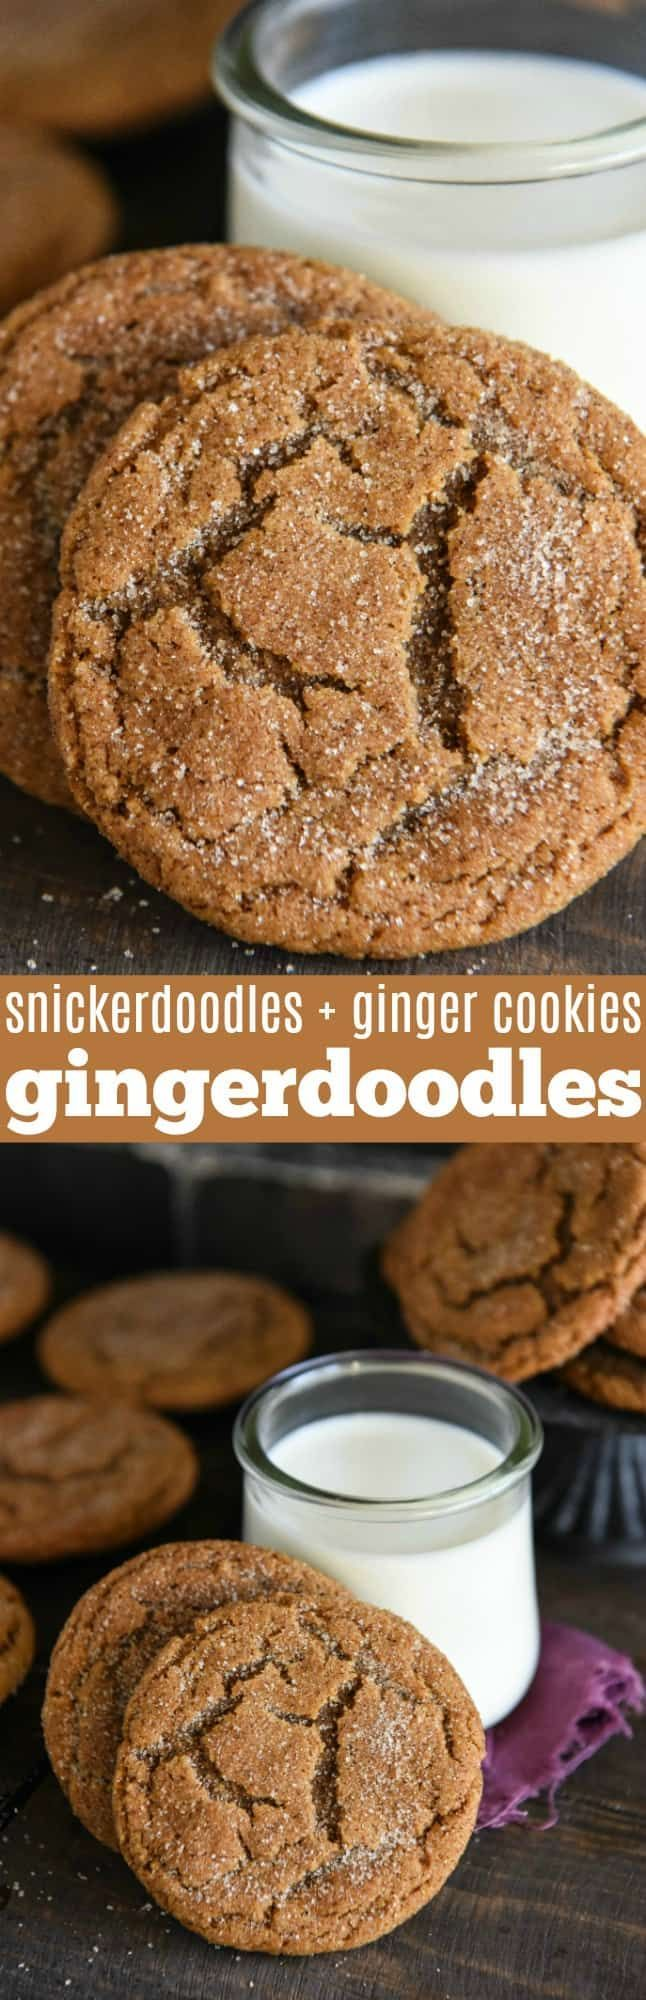 Gingerdoodle Cookies: a cross between a chewy gingerbread cookie and a classic snickerdoodle to create a new Christmas cookie that will be an instant favorite!